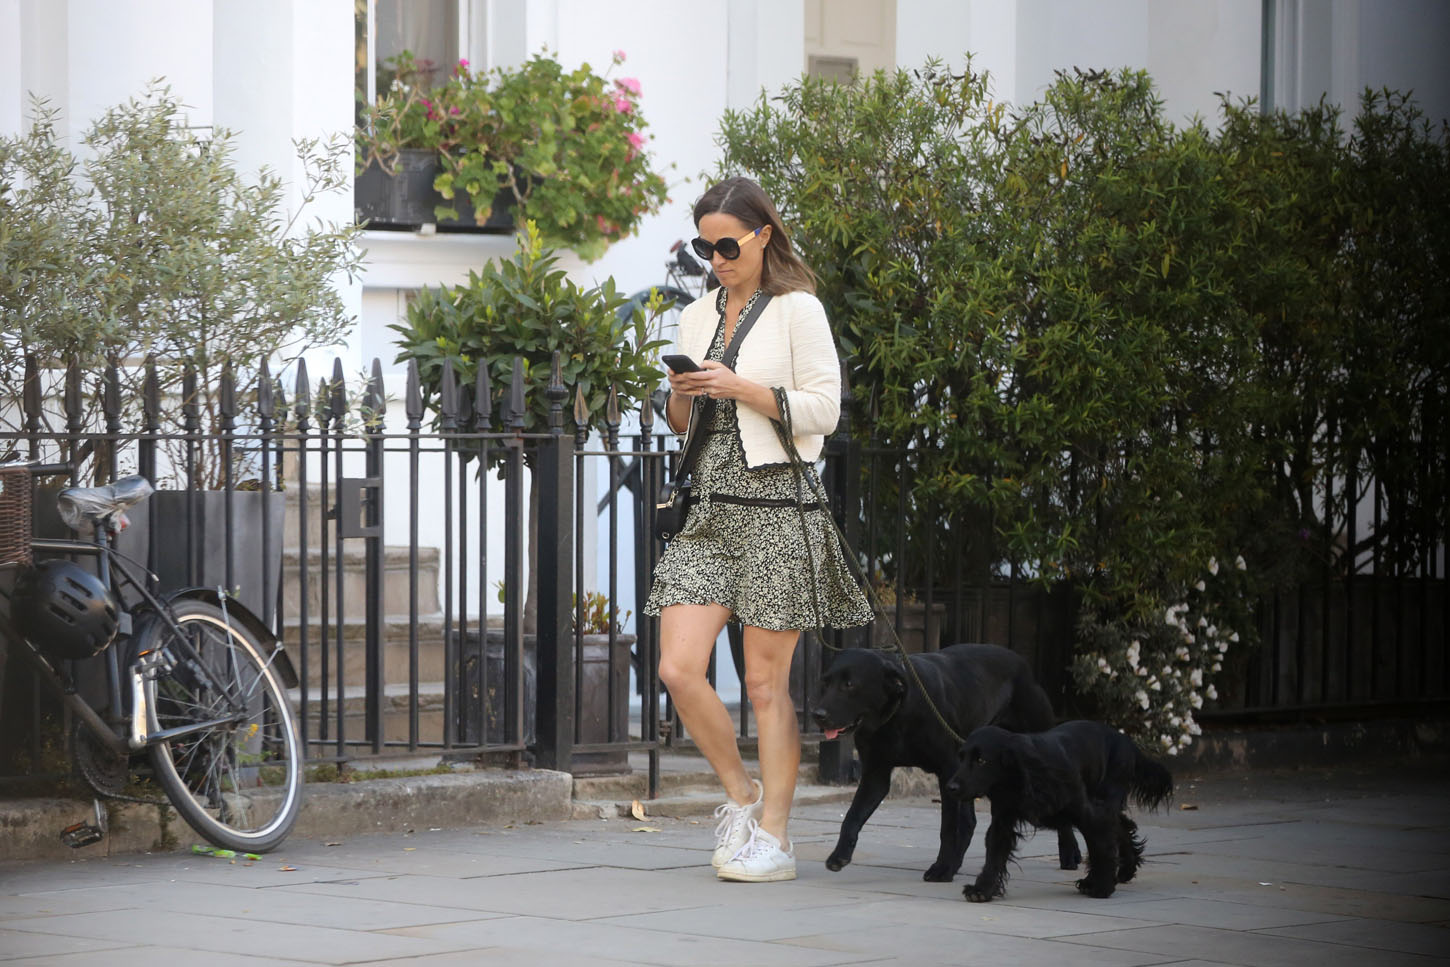 EXCLUSIVE: Pippa Middleton spotted walking beloved black Labrador pooch broke tail. 12 May 2018, Image: 371528397, License: Rights-managed, Restrictions: NO Australia, France, Germany, New Zealand, United Kingdom, Model Release: no, Credit line: Profimedia, Mega Agency